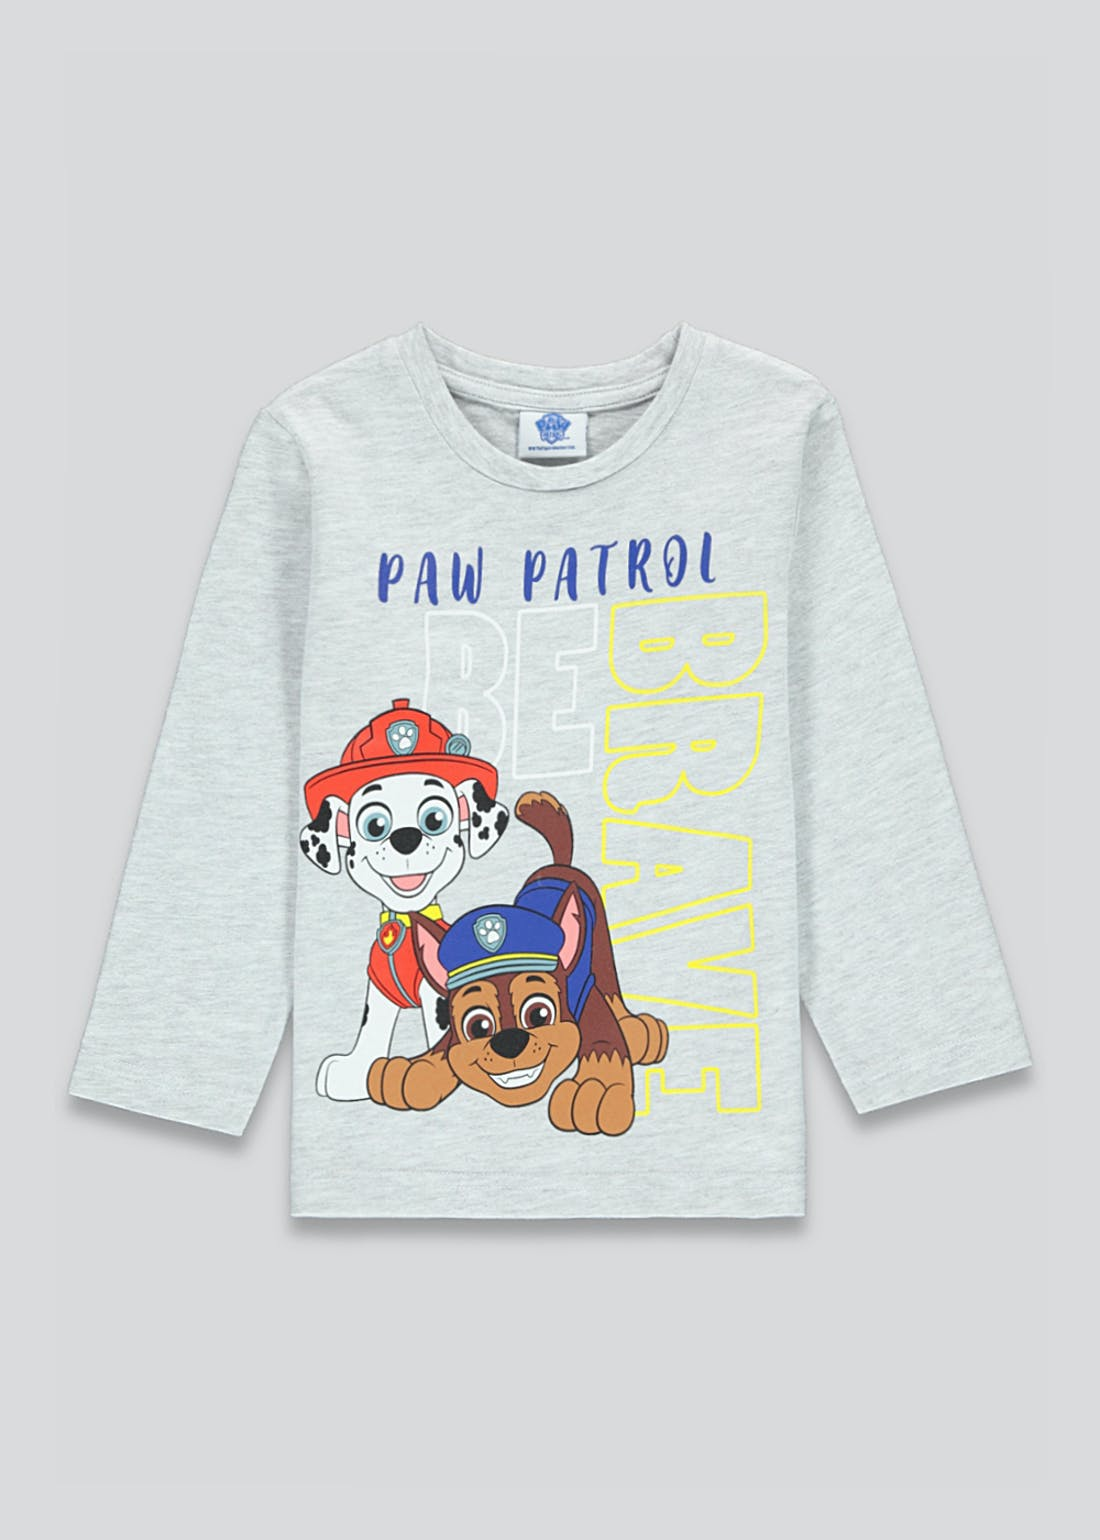 Unisex Paw Patrol Long Sleeve T-Shirt (12mths-5yrs)